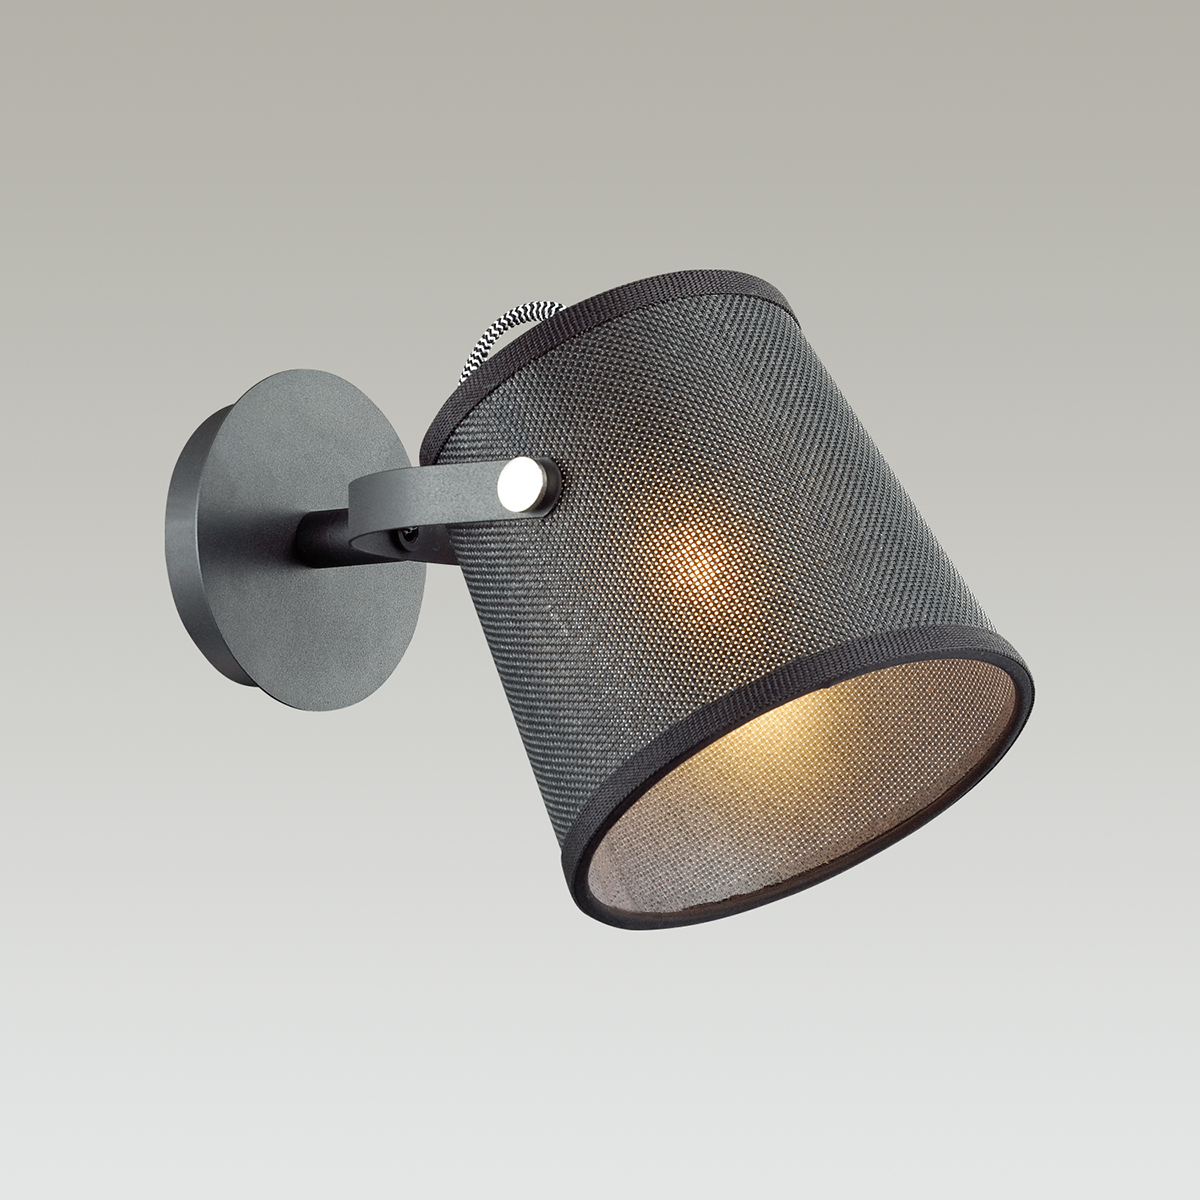 Бра ODEON LIGHT арт. 4159/1W